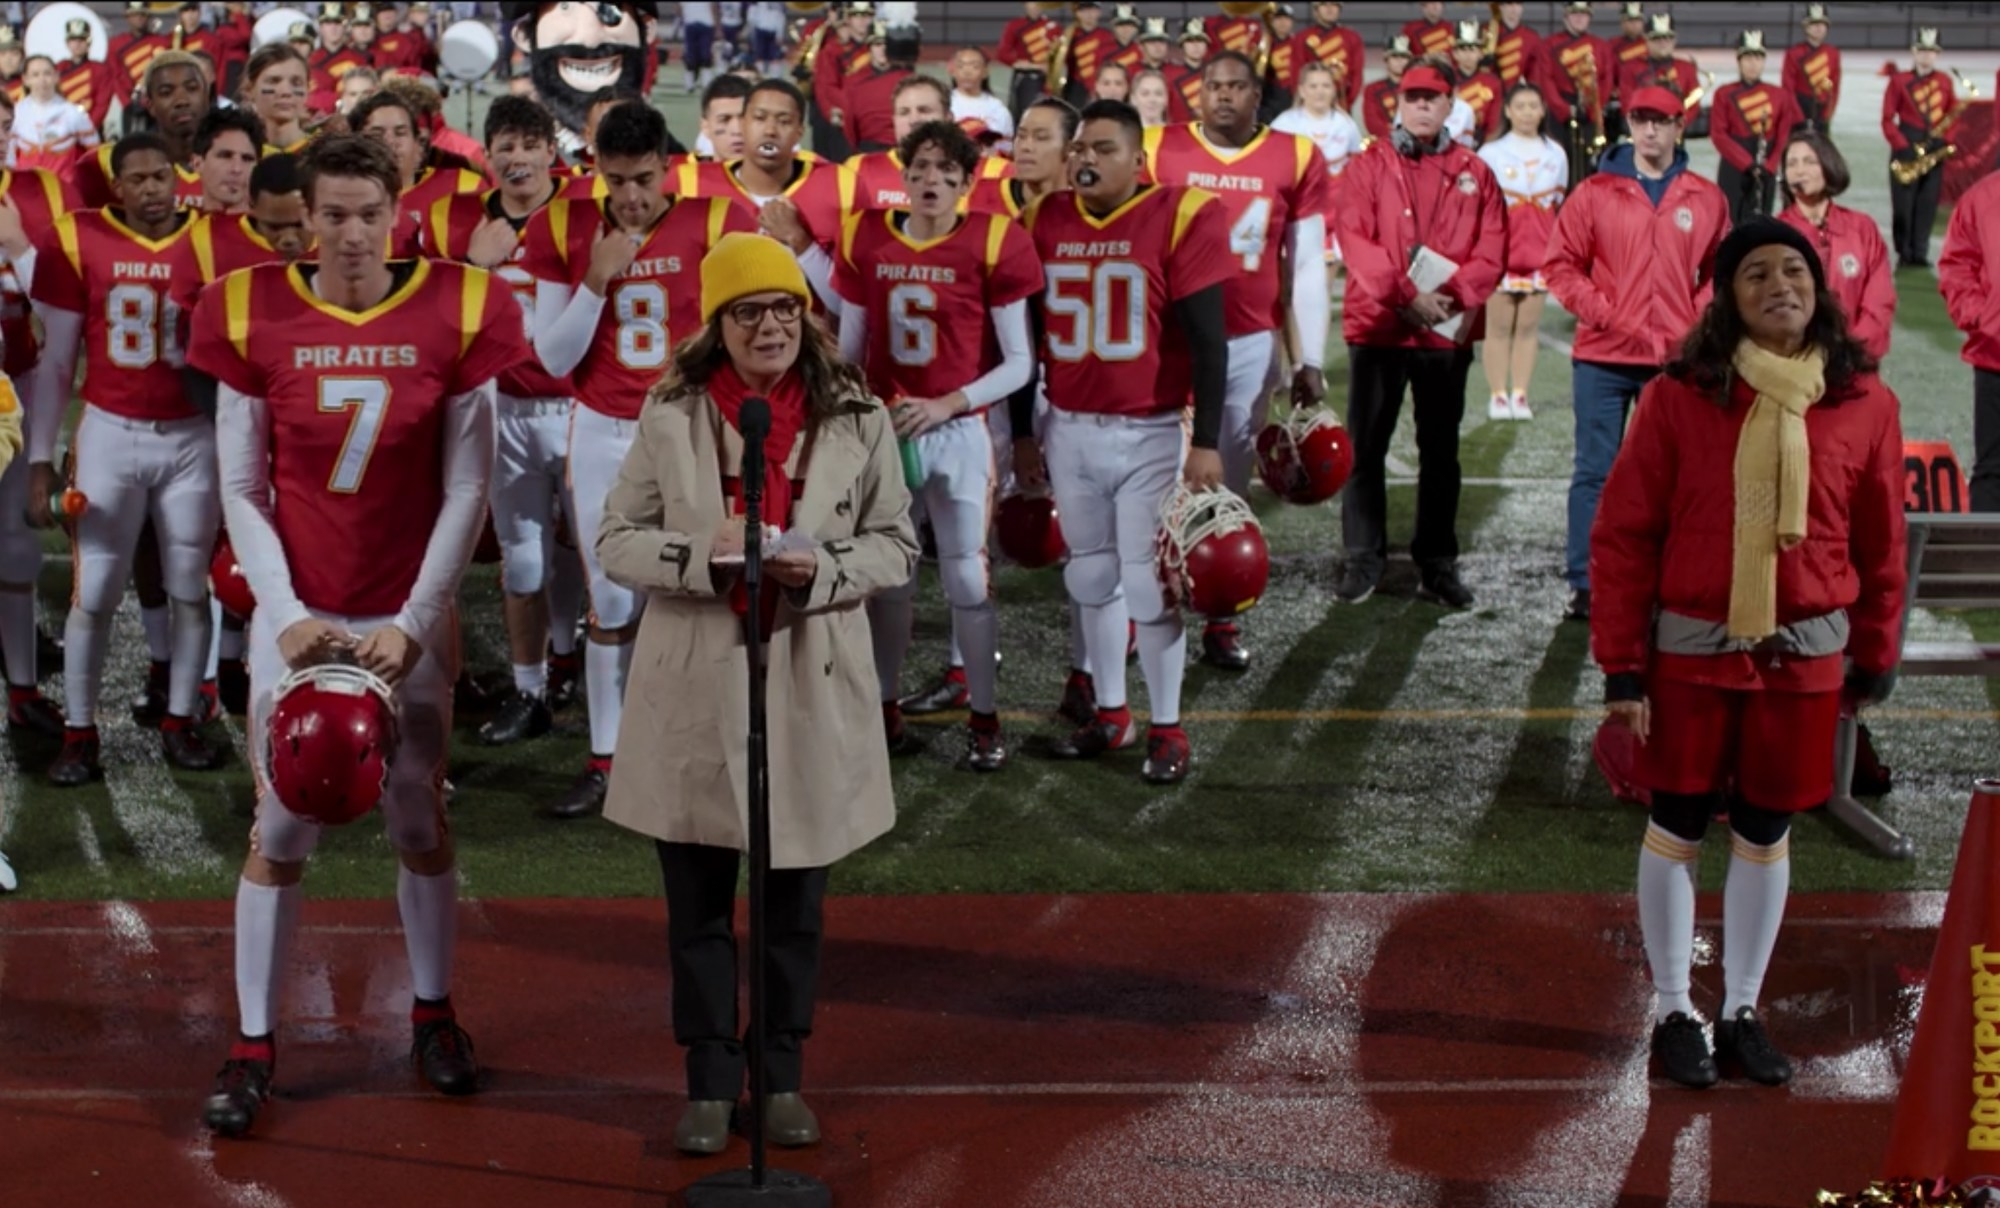 High school's football team stands on the field behind the principal at a microphone